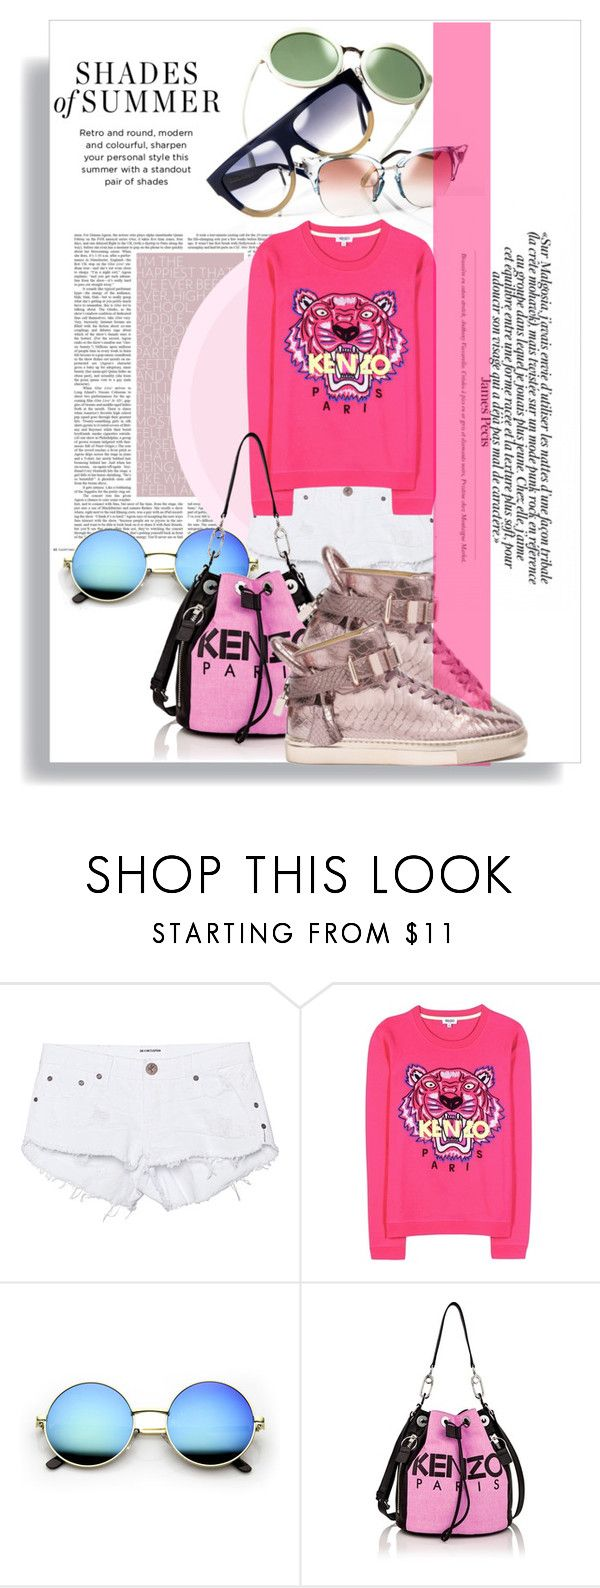 """Kenzo"" by thestrawberryfields ❤ liked on Polyvore featuring One Teaspoon, Kenzo, kenzo, sunglasses and hightops"